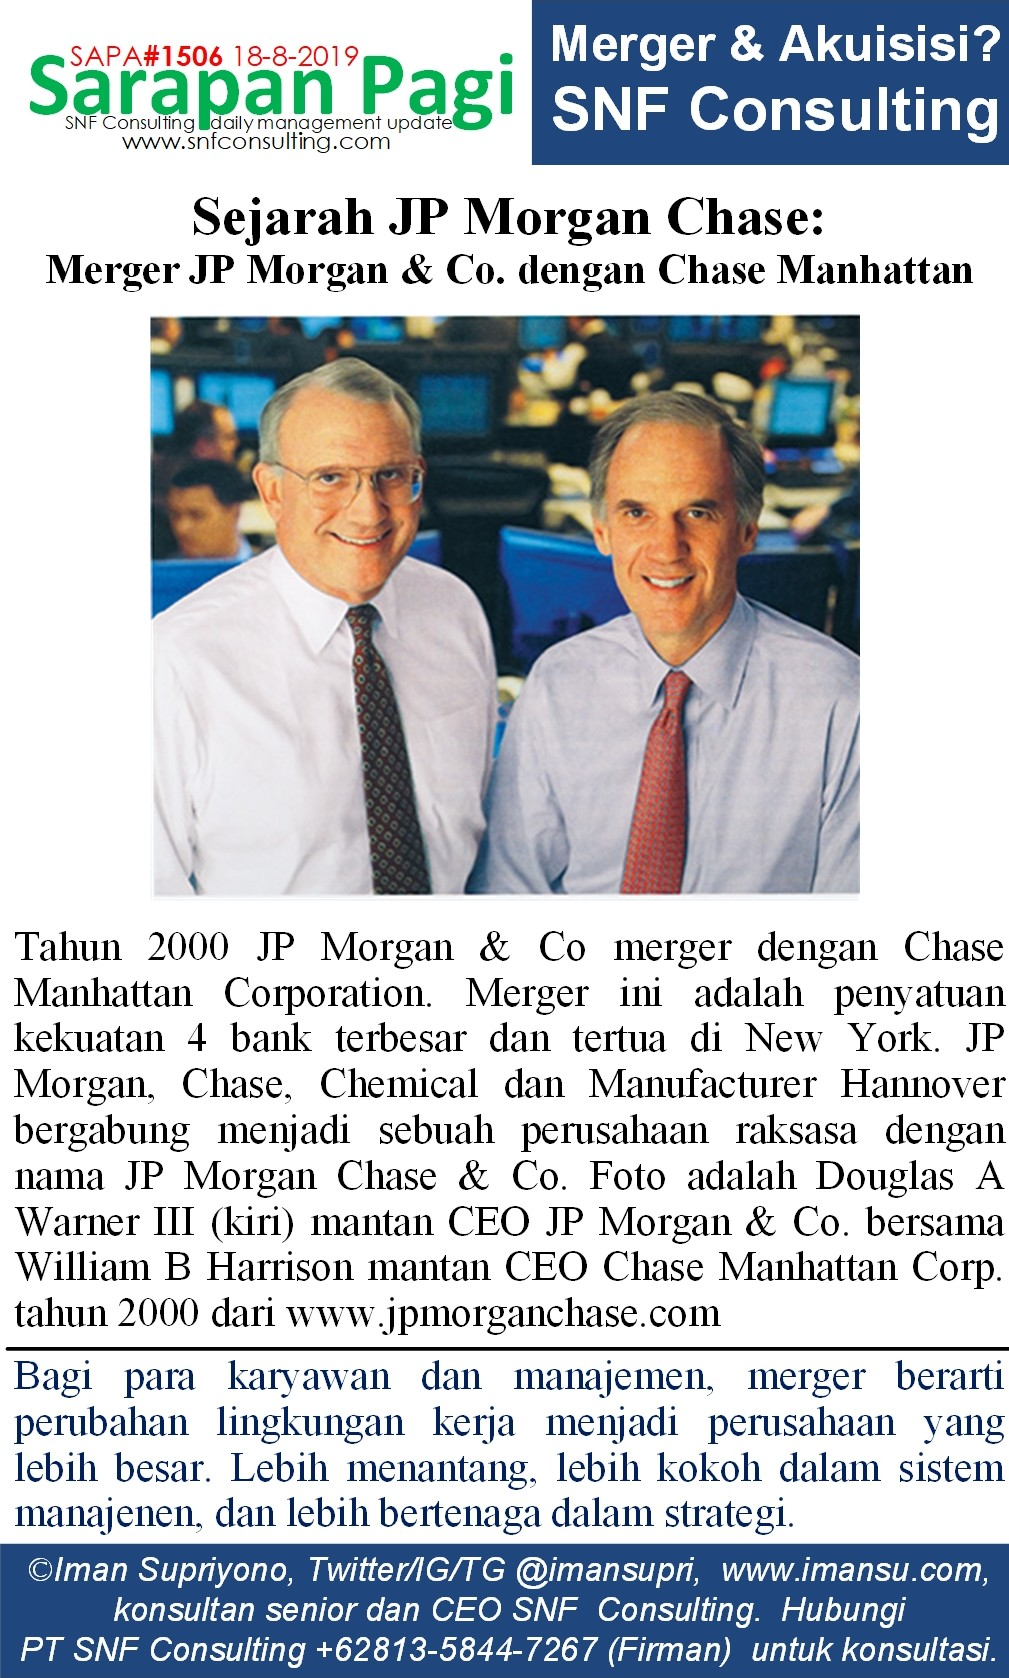 SAPA1506 Sejarah JP Morgan Chase merger JP Morgan co dengan chase manhatan~2